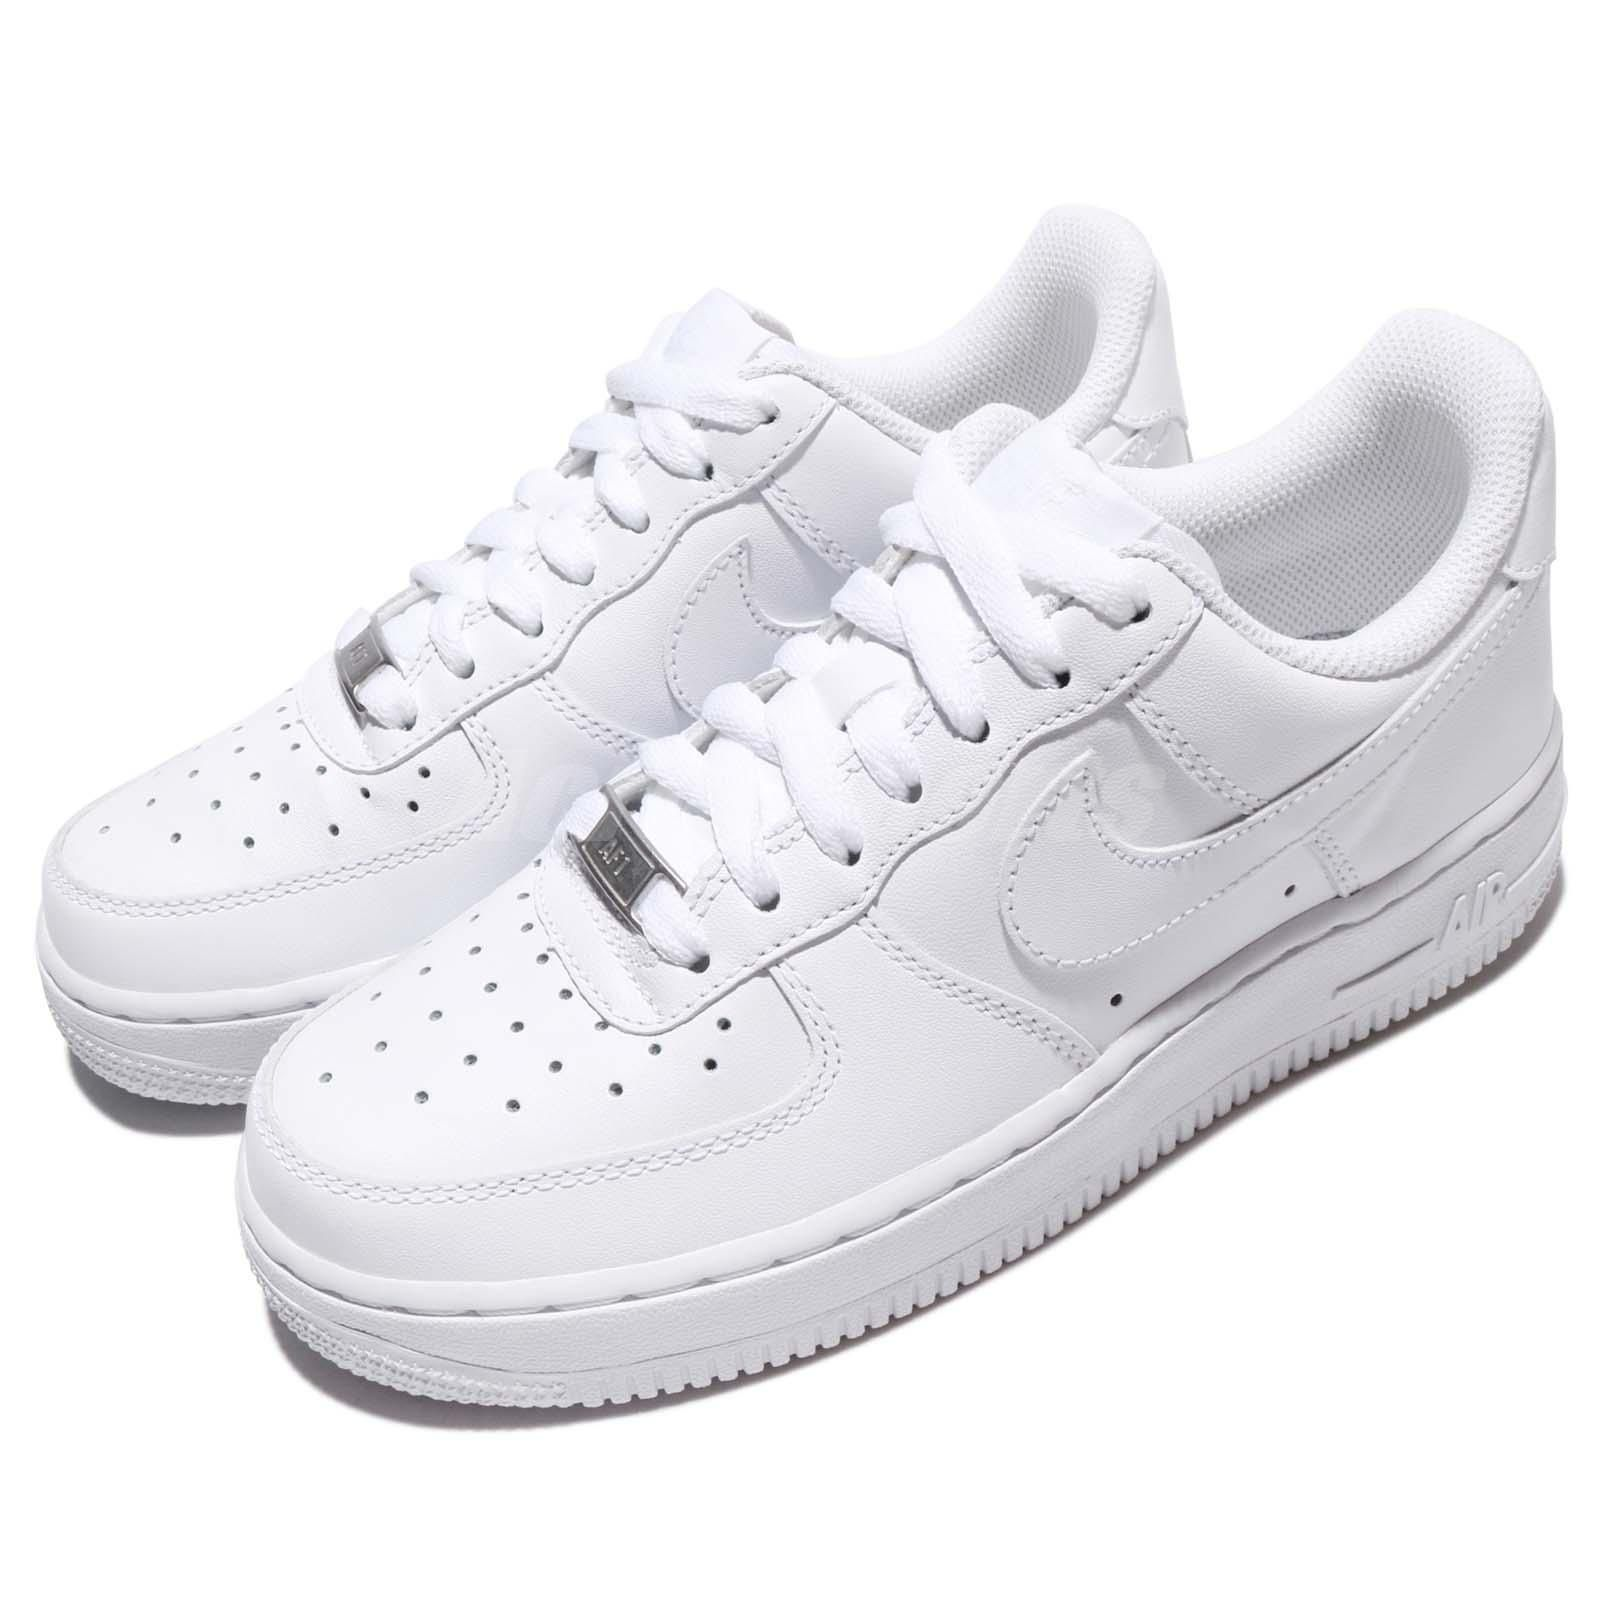 7ec82b19fde Wmns Nike Air Force 1 07 Whiteout Womens Classic Shoes Af1 Sneakers 315115- 112